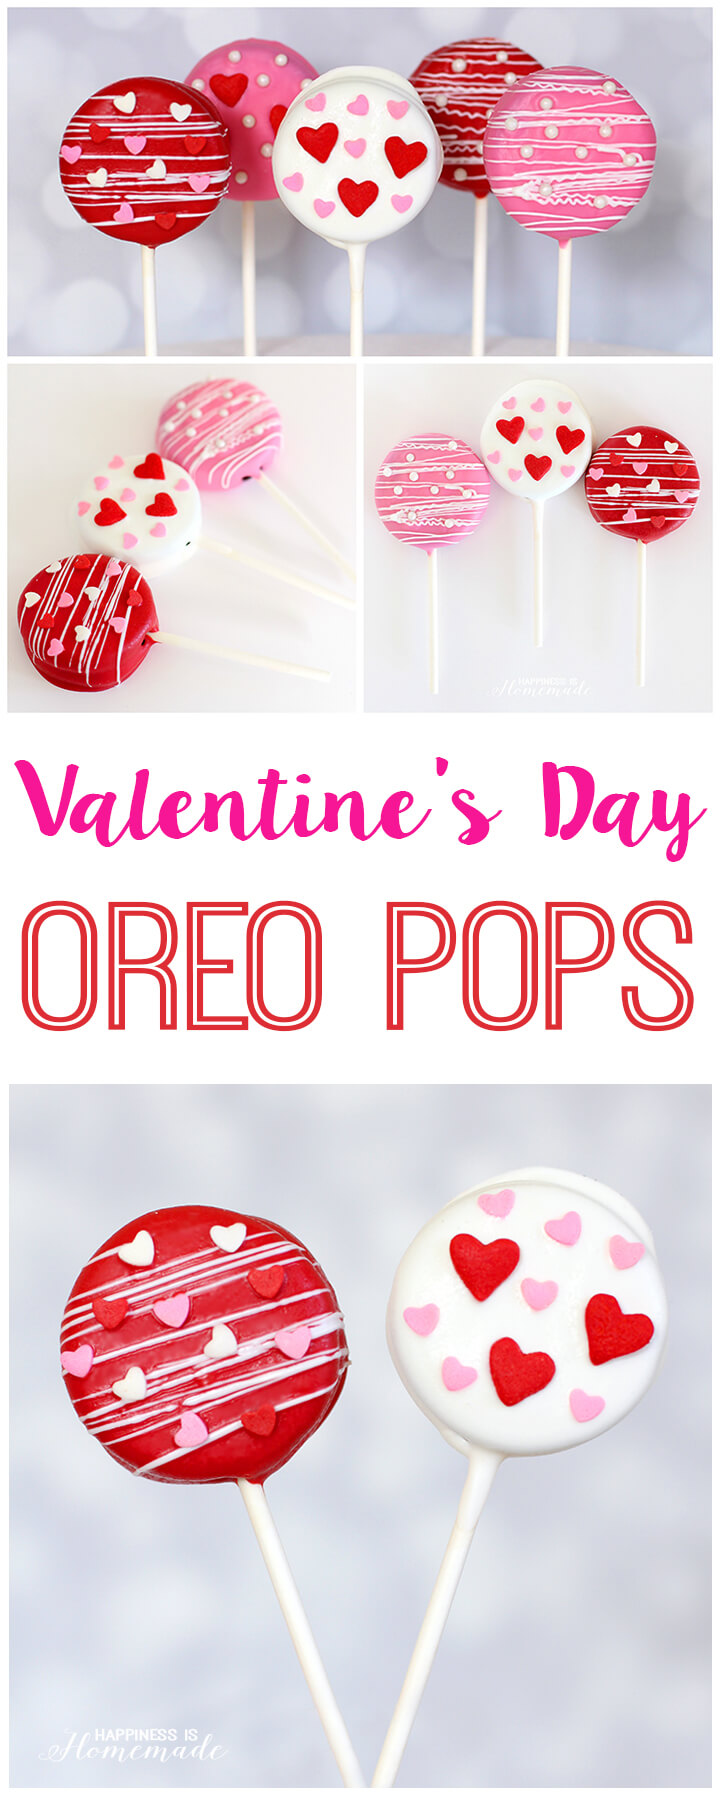 Super Cute Valentine's Day Oreo Pops Treat